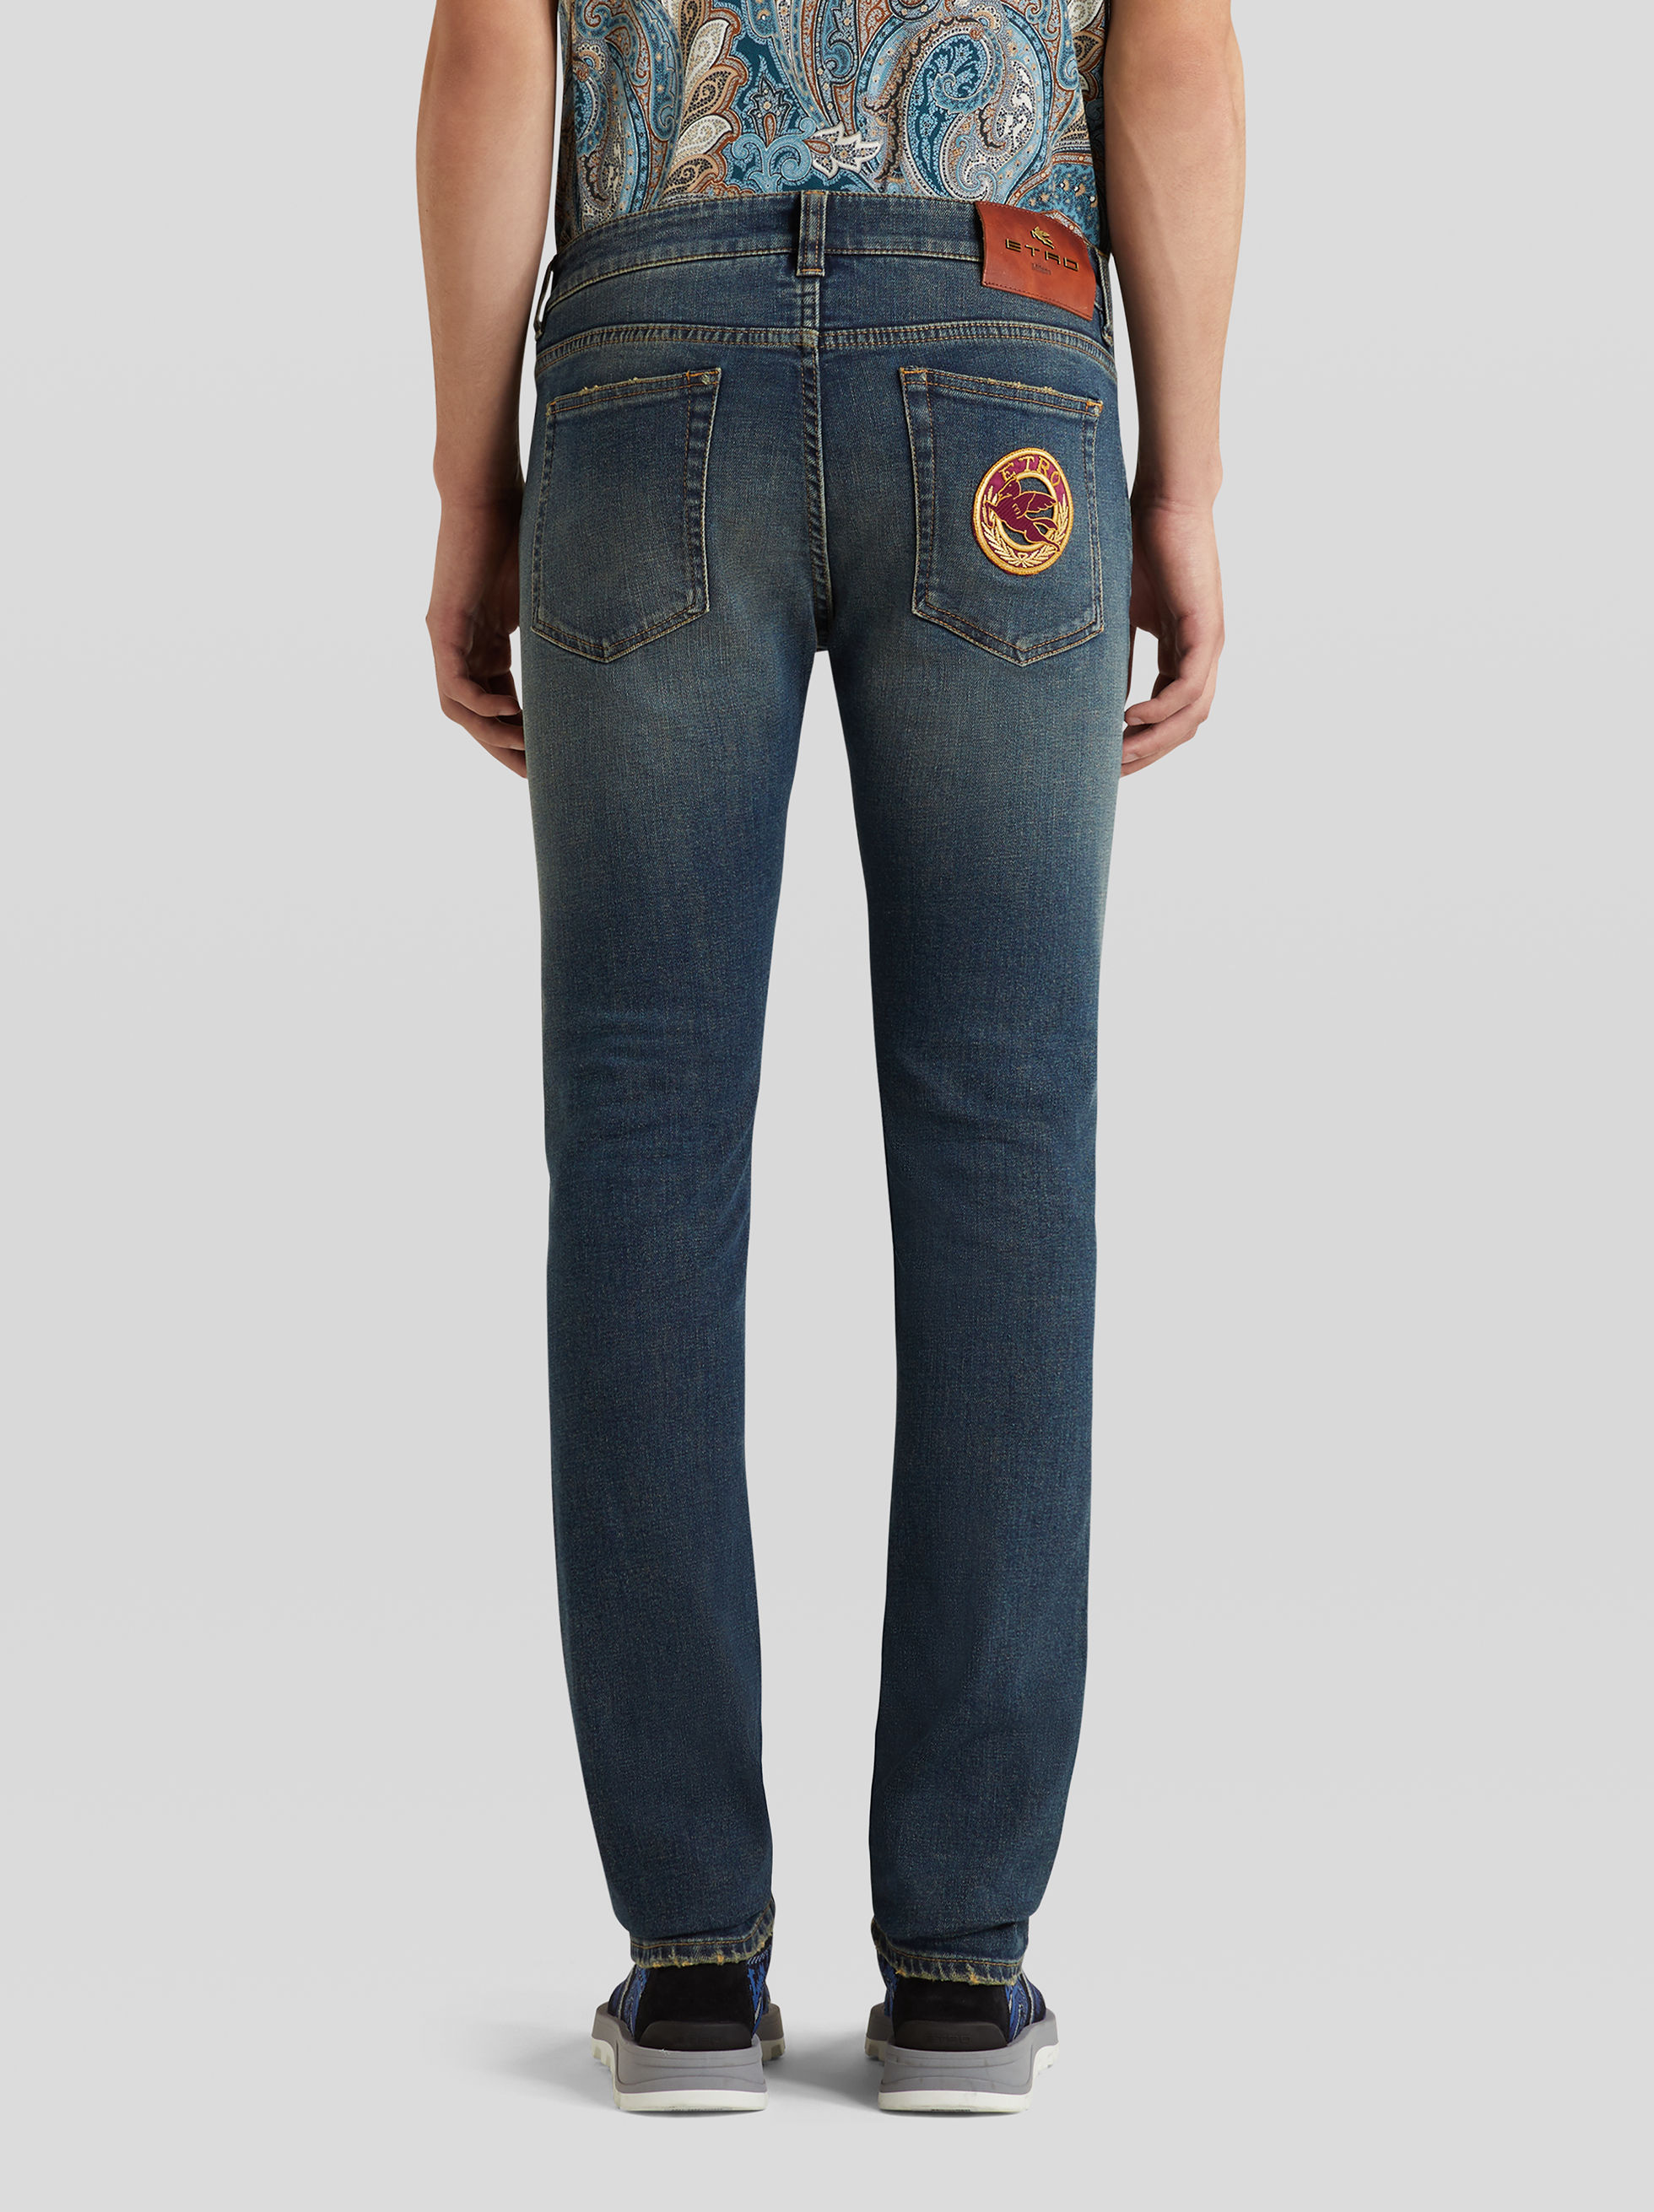 STRETCH DENIM JEANS WITH LOGO